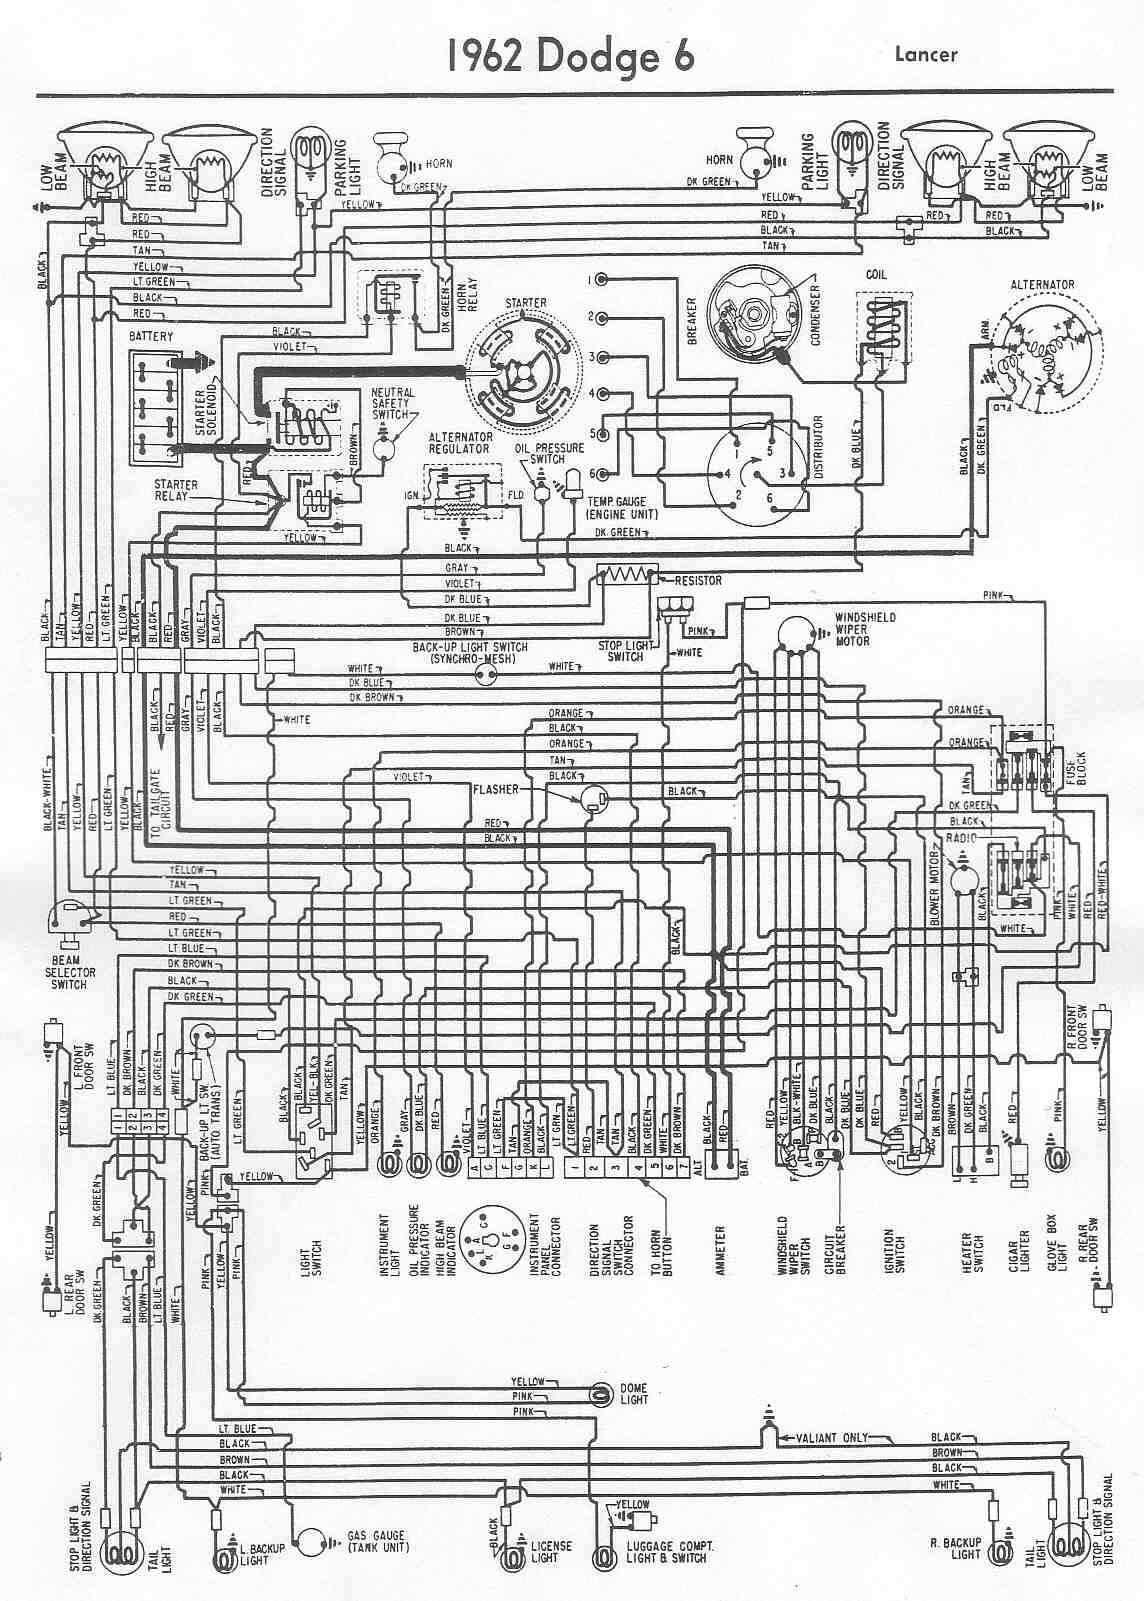 wiring diagram 1997 mitsubishi lancer 6 17 stromoeko de u2022wiring diagram 1997 mitsubishi lancer manual [ 1144 x 1601 Pixel ]